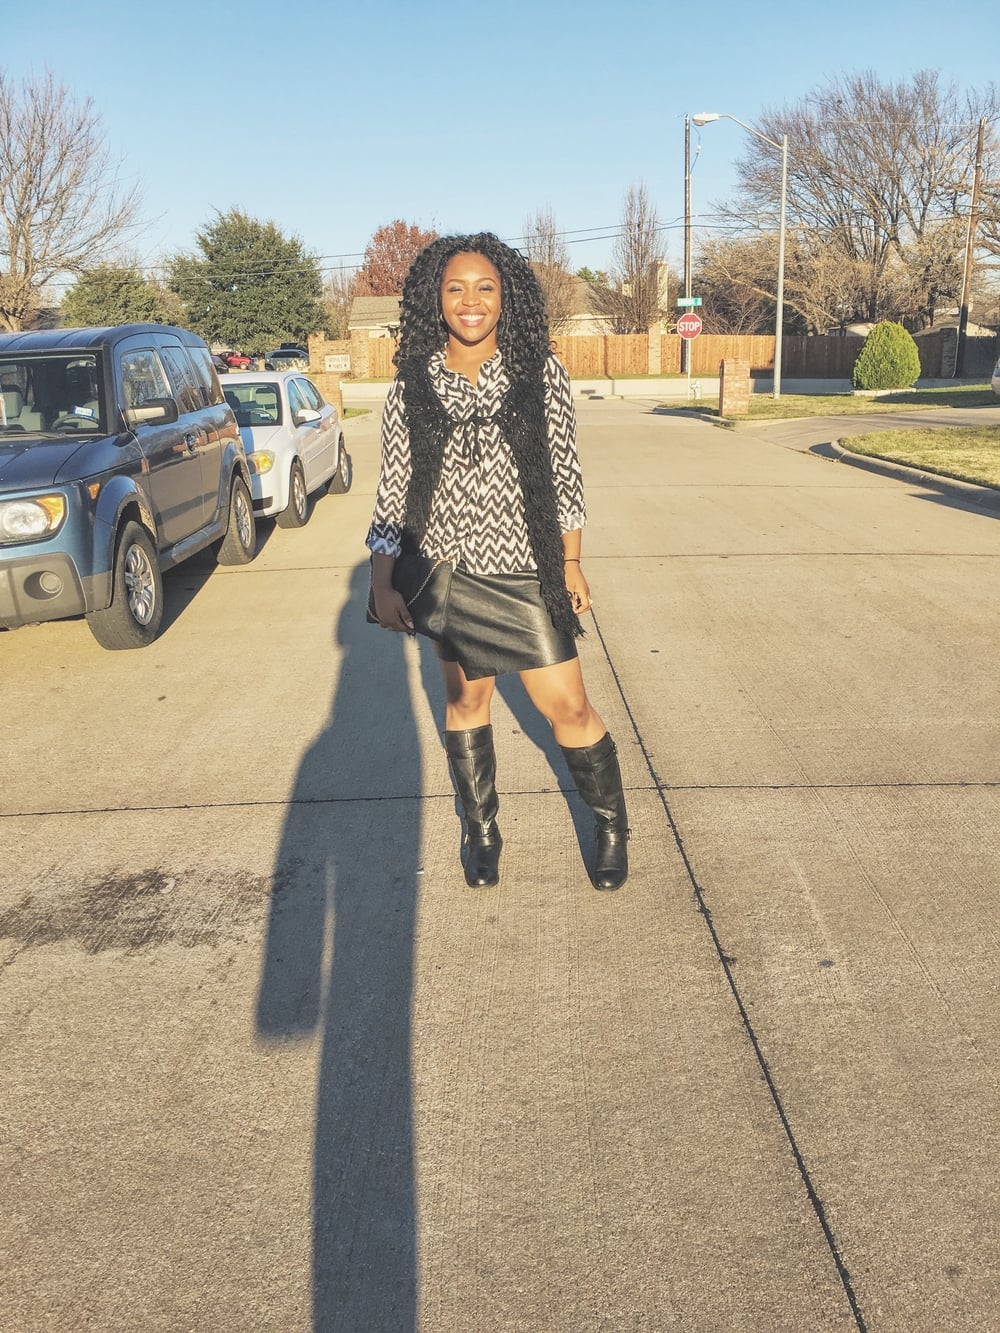 """Outfit details: Chevron shirt-H&M, Shabby vest-Urban Outfitters, Split Hem """"Leather"""" skirt-Cotton On, Black silver buckle boots-JustFab, Black clutch-Gifted?"""